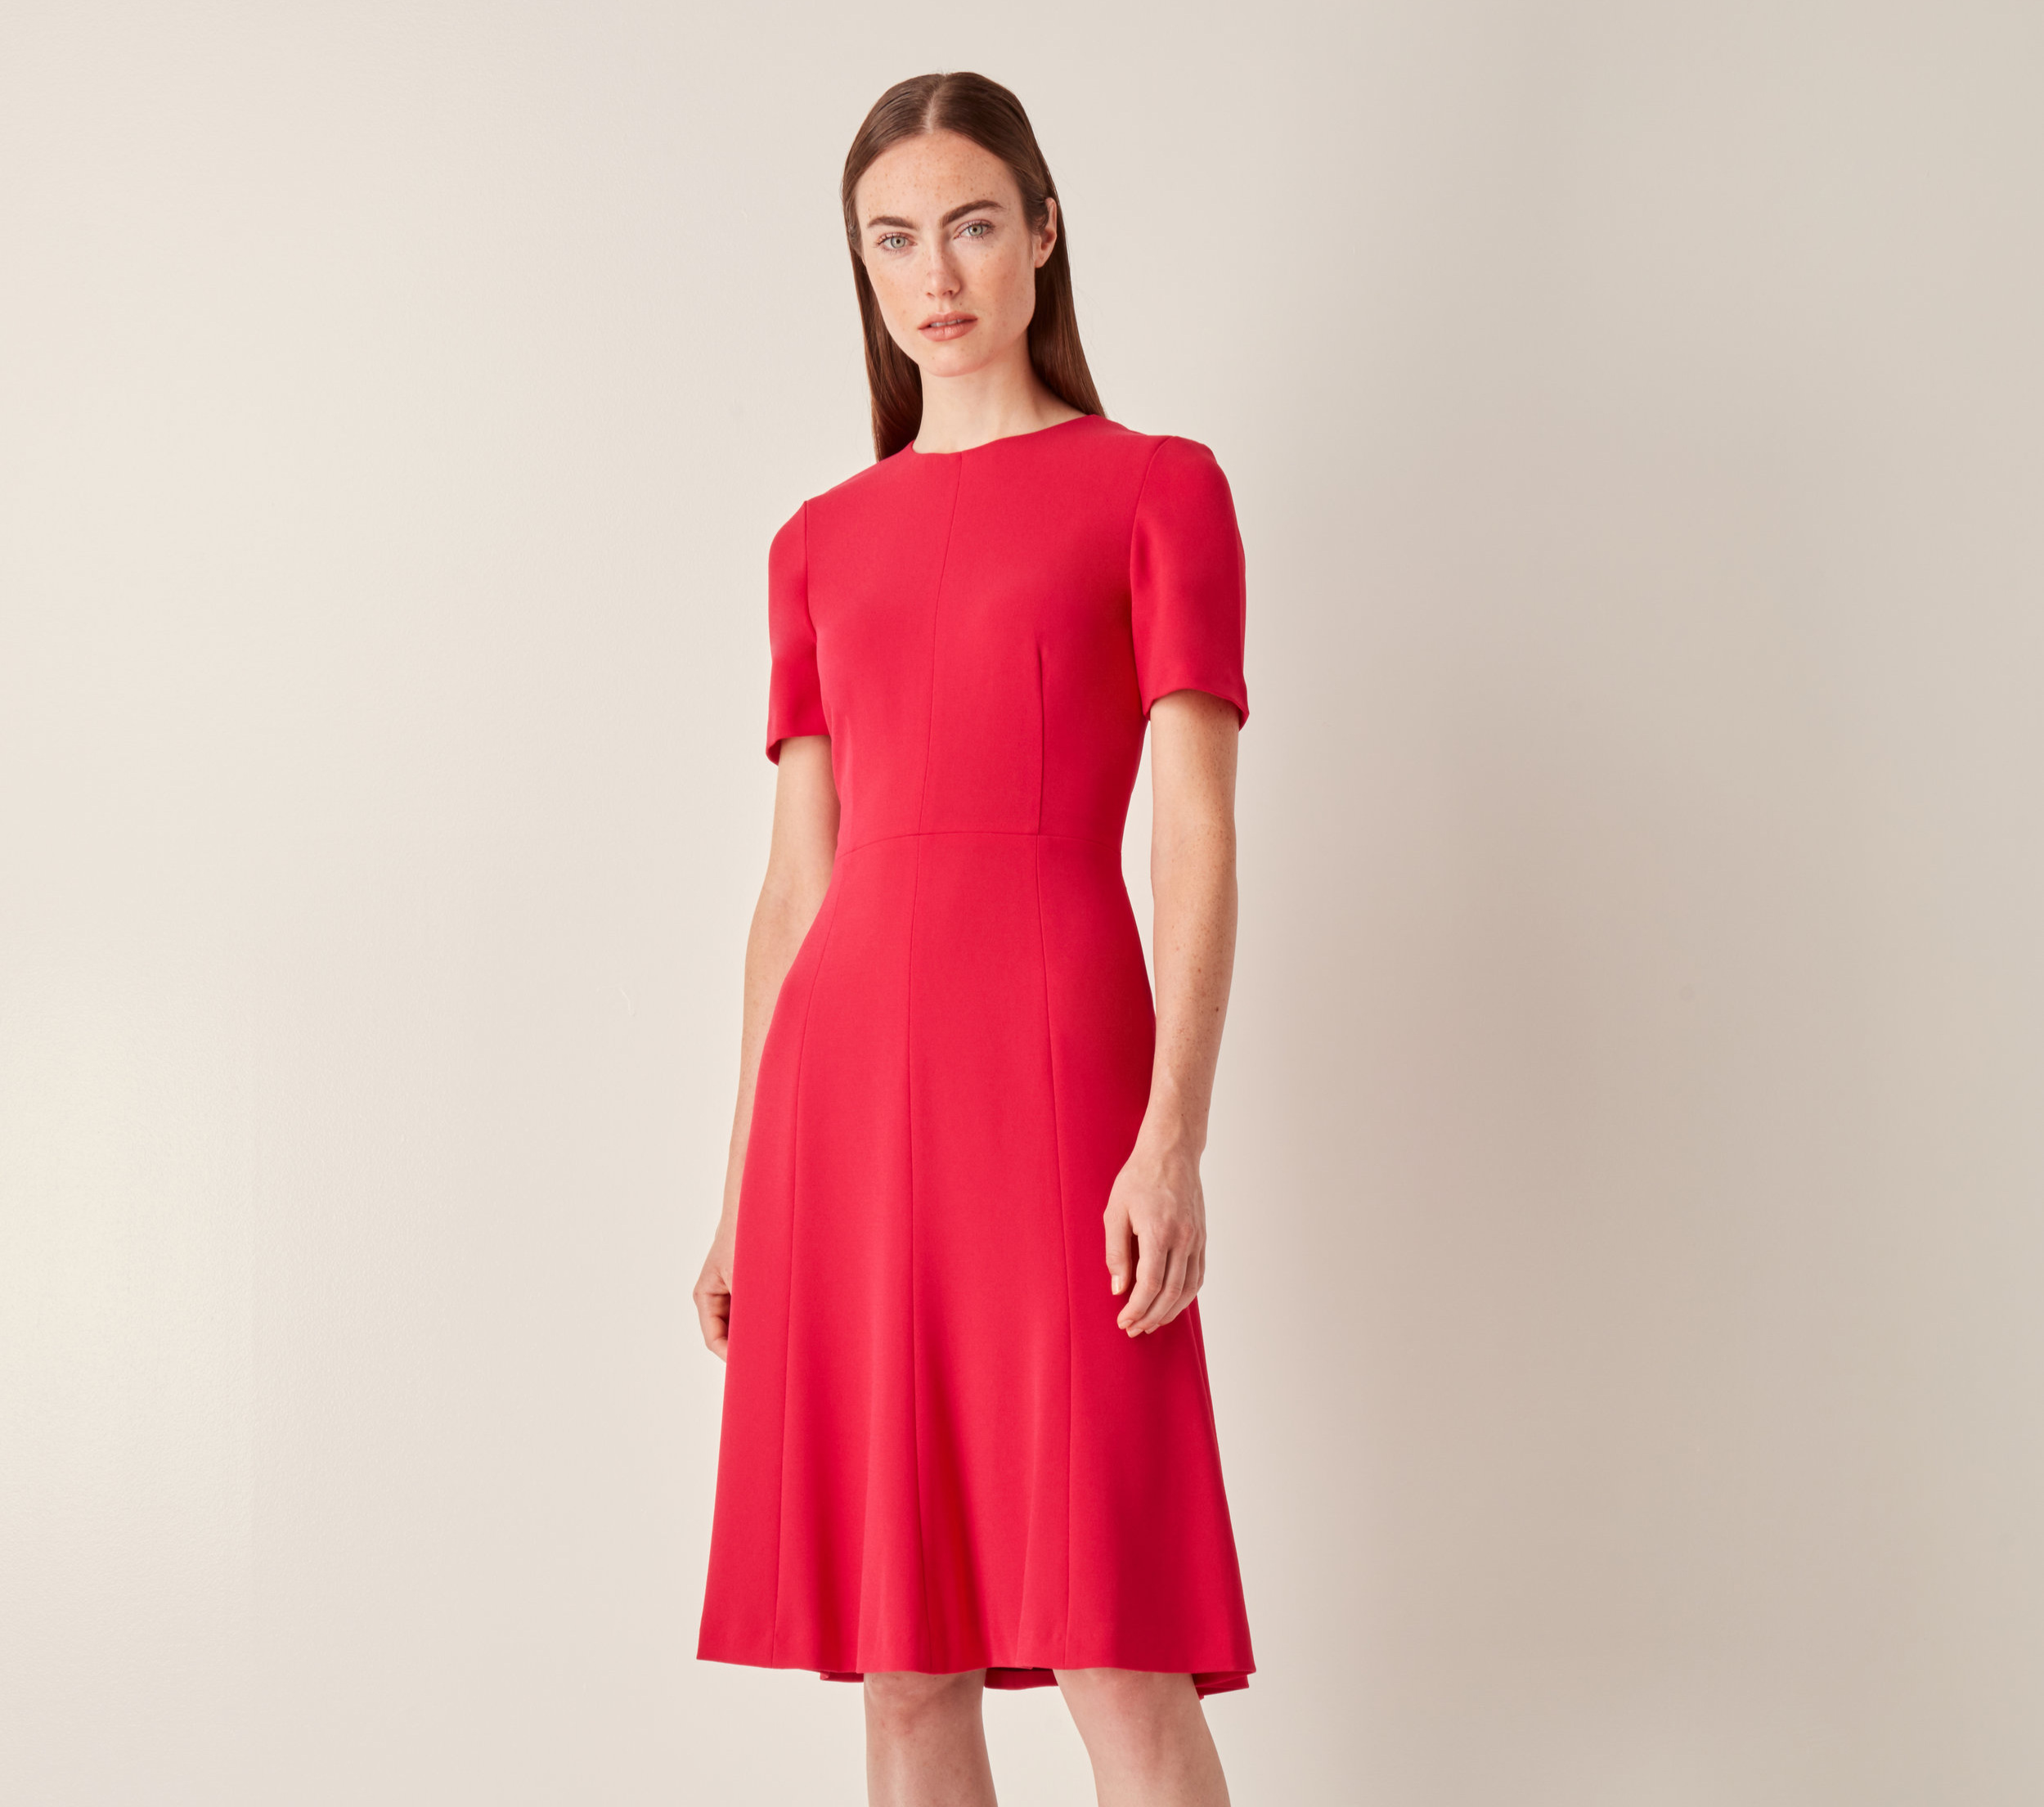 luton-dress-hero-2018_08_06_J%26C21200+RAQRT.jpg